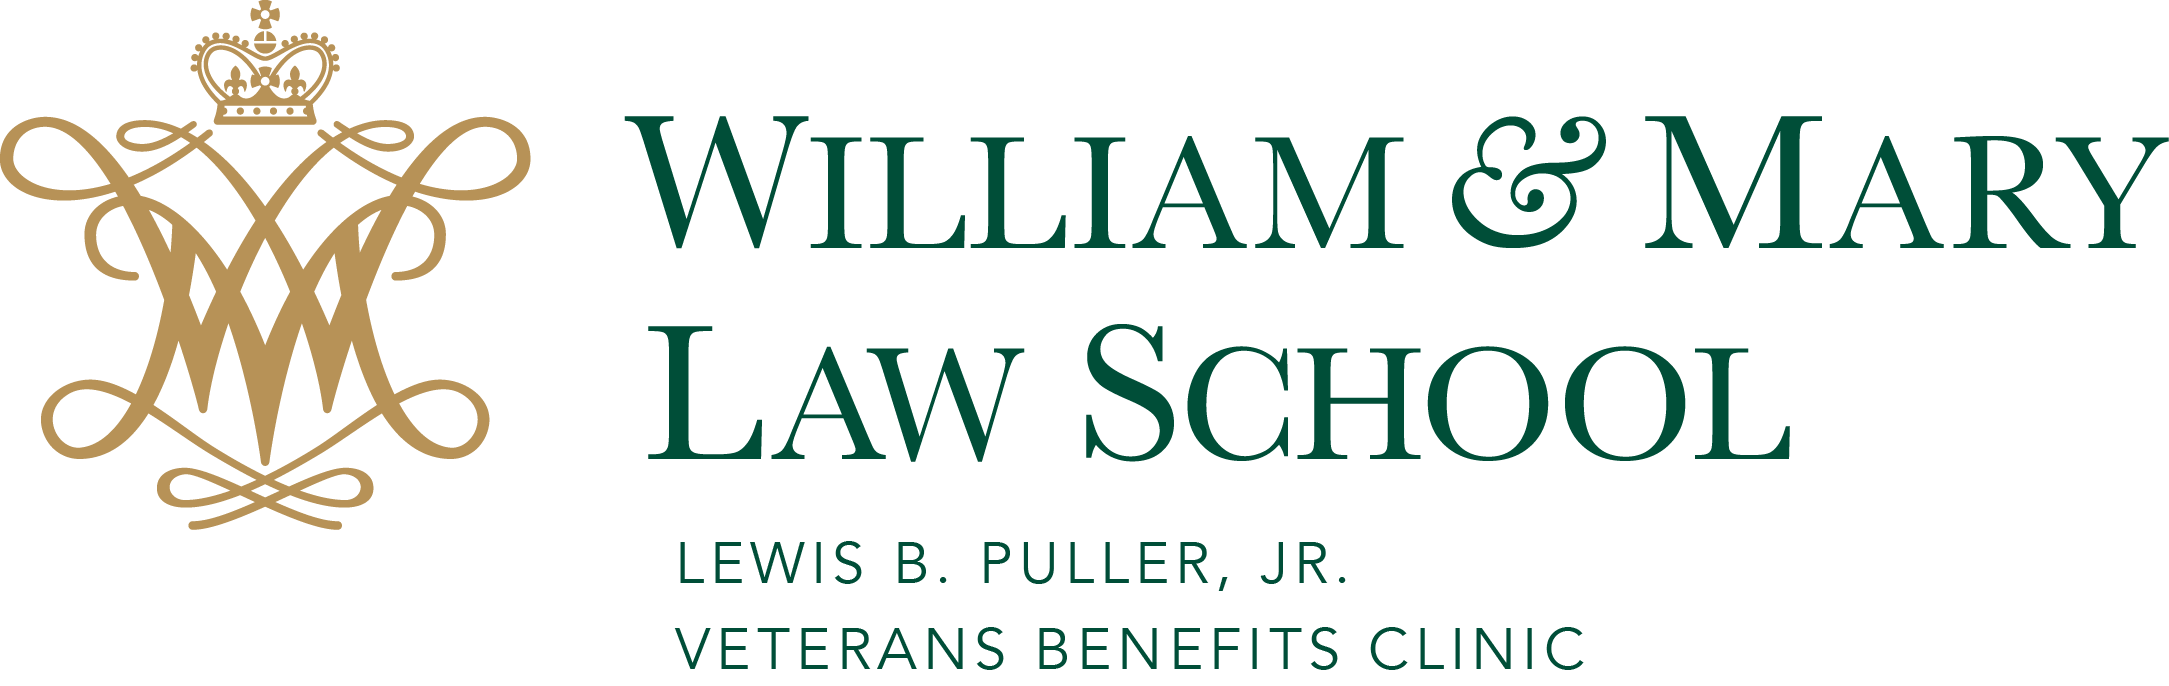 Lewis B. Puller, Jr. Veterans Benefits Clinic